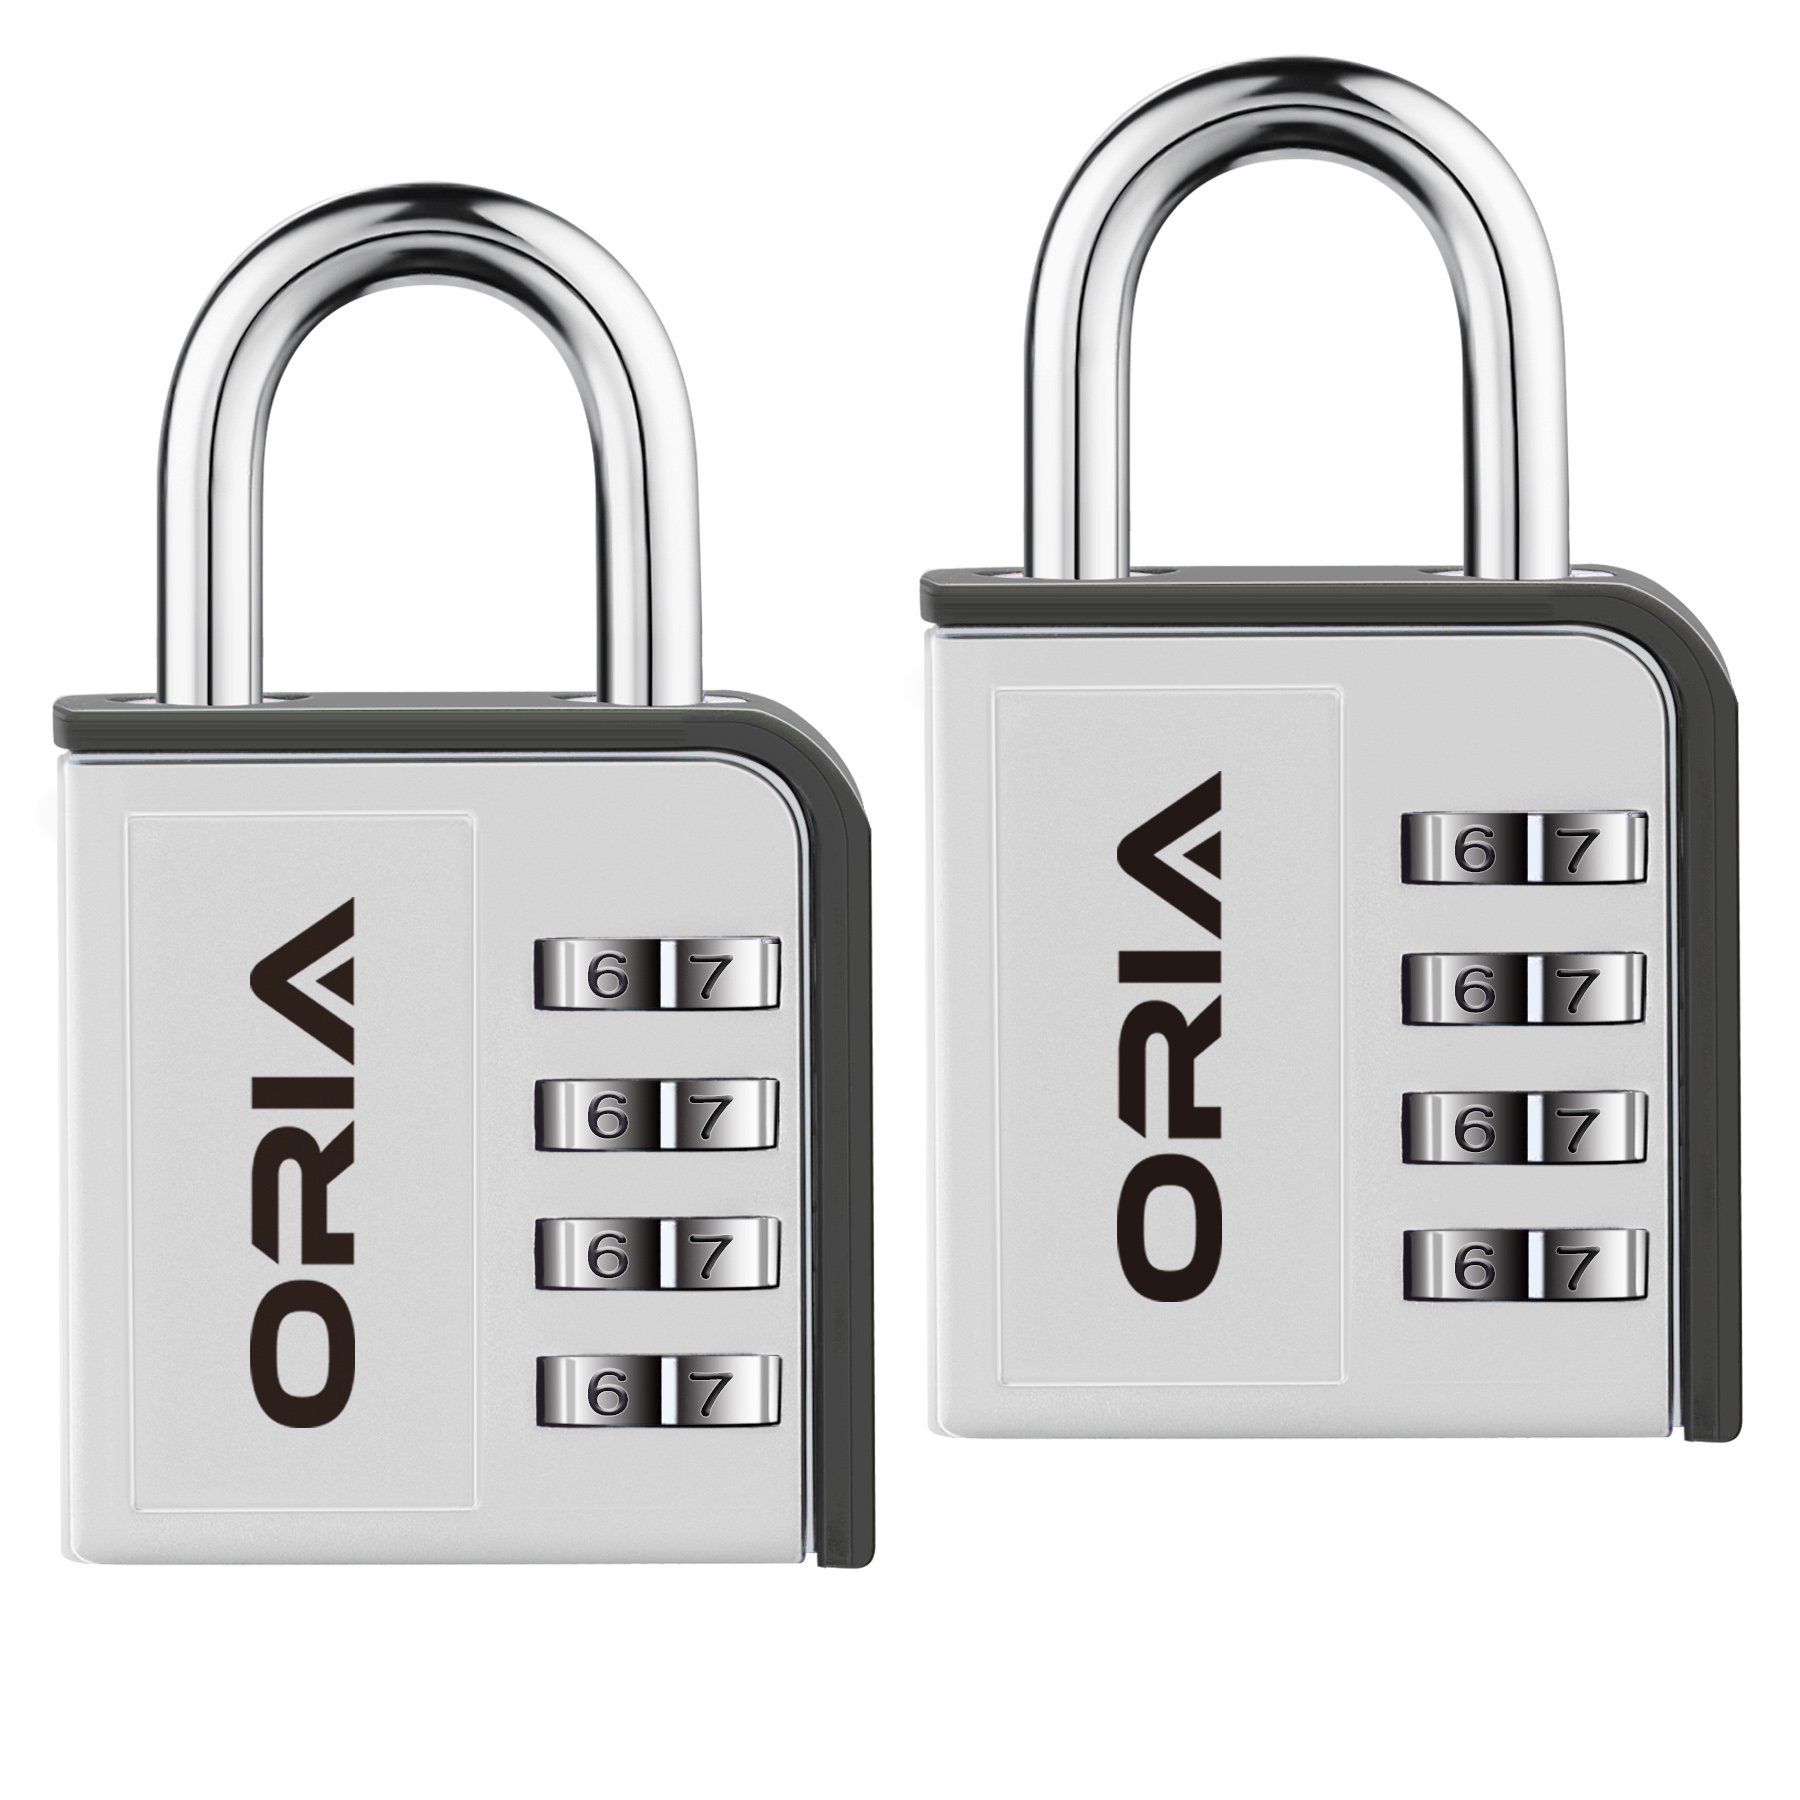 ORIA Combination Lock, 4 Digit Padlock, 2 Pack Combination Lock with Water Proof Design for School, Travel Baggage, Gym, Sport Locker, Toolbox and Storage (Silver/Black)